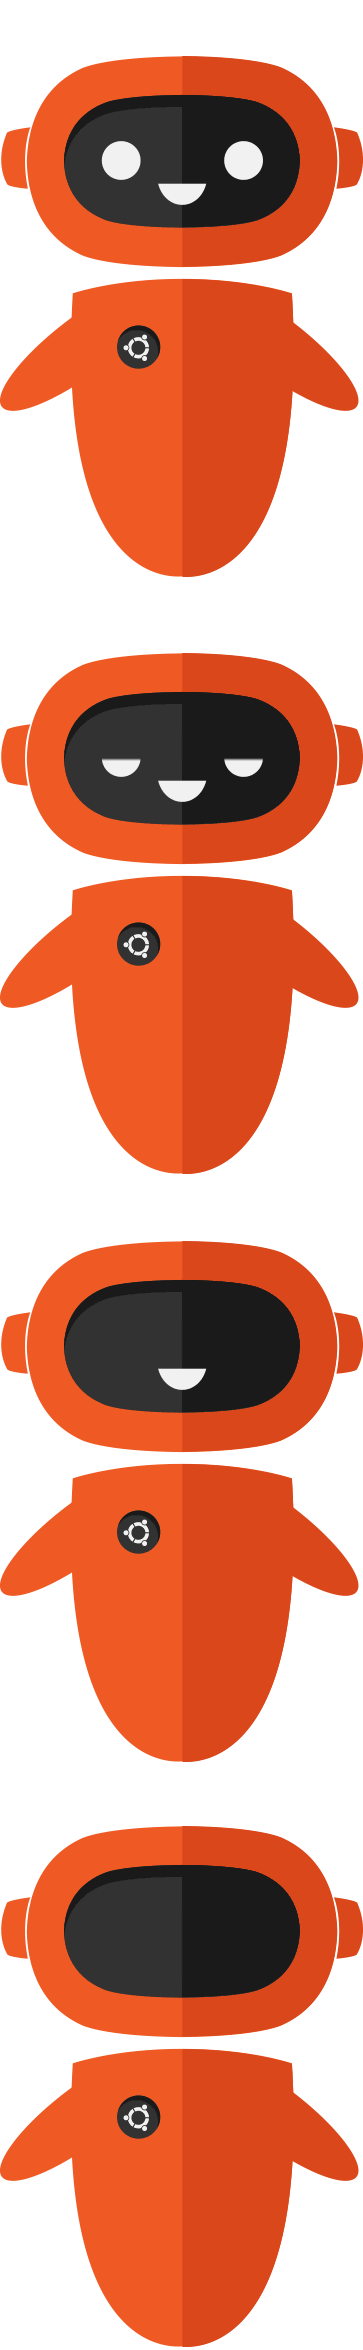 0_1540263839800_PowerDown-images.png